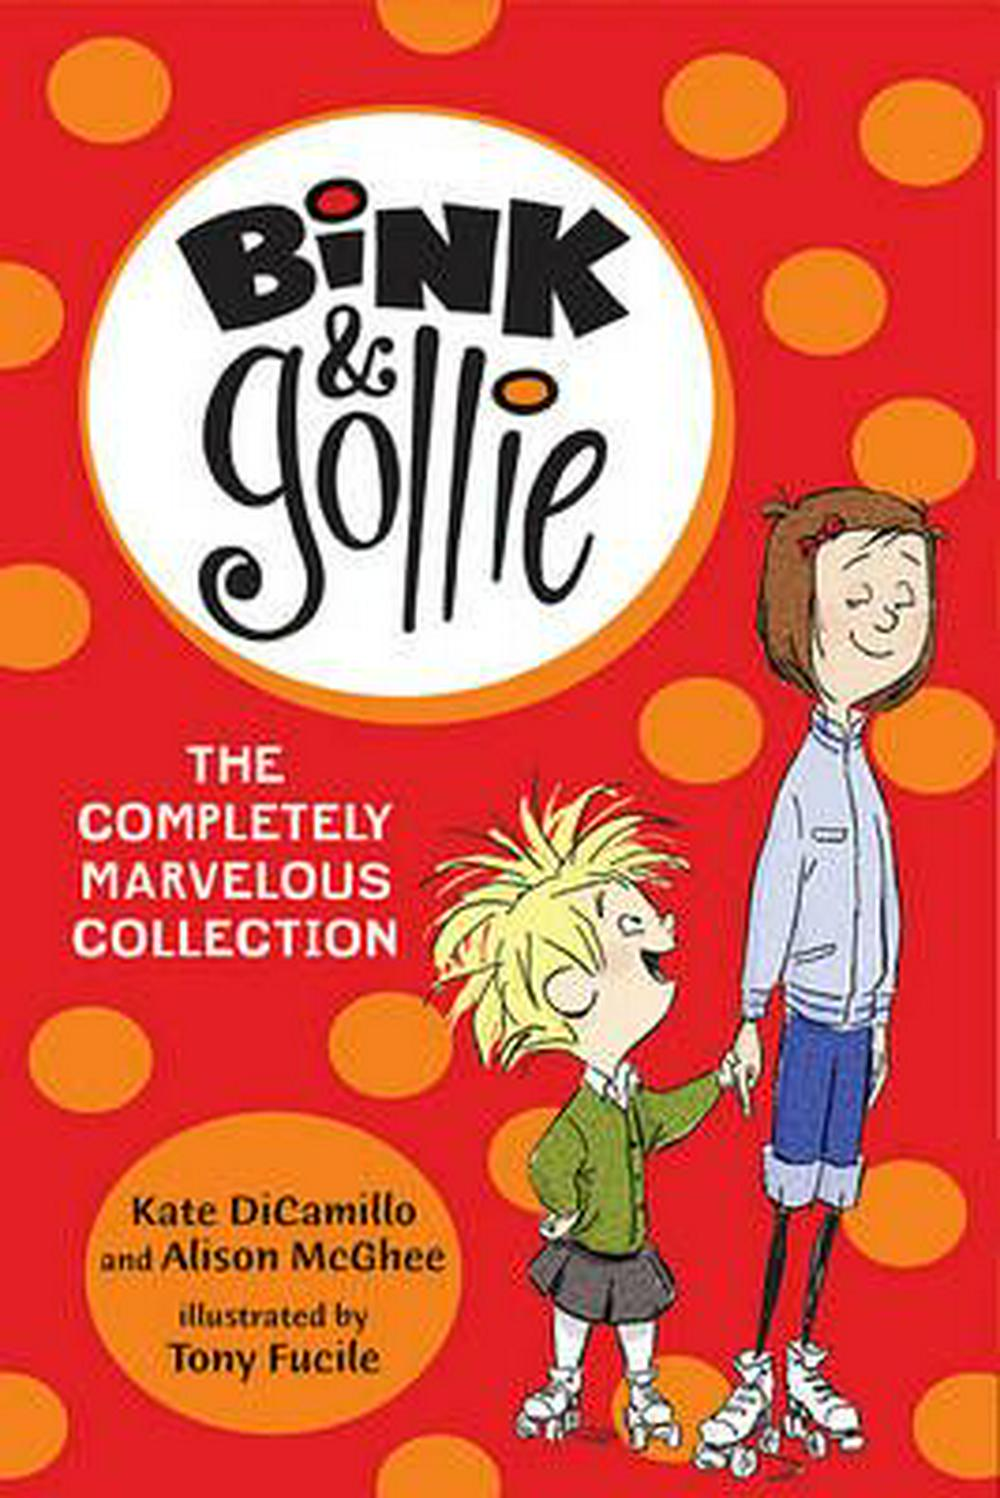 Bink & Gollie: The Completely Marvelous Collection